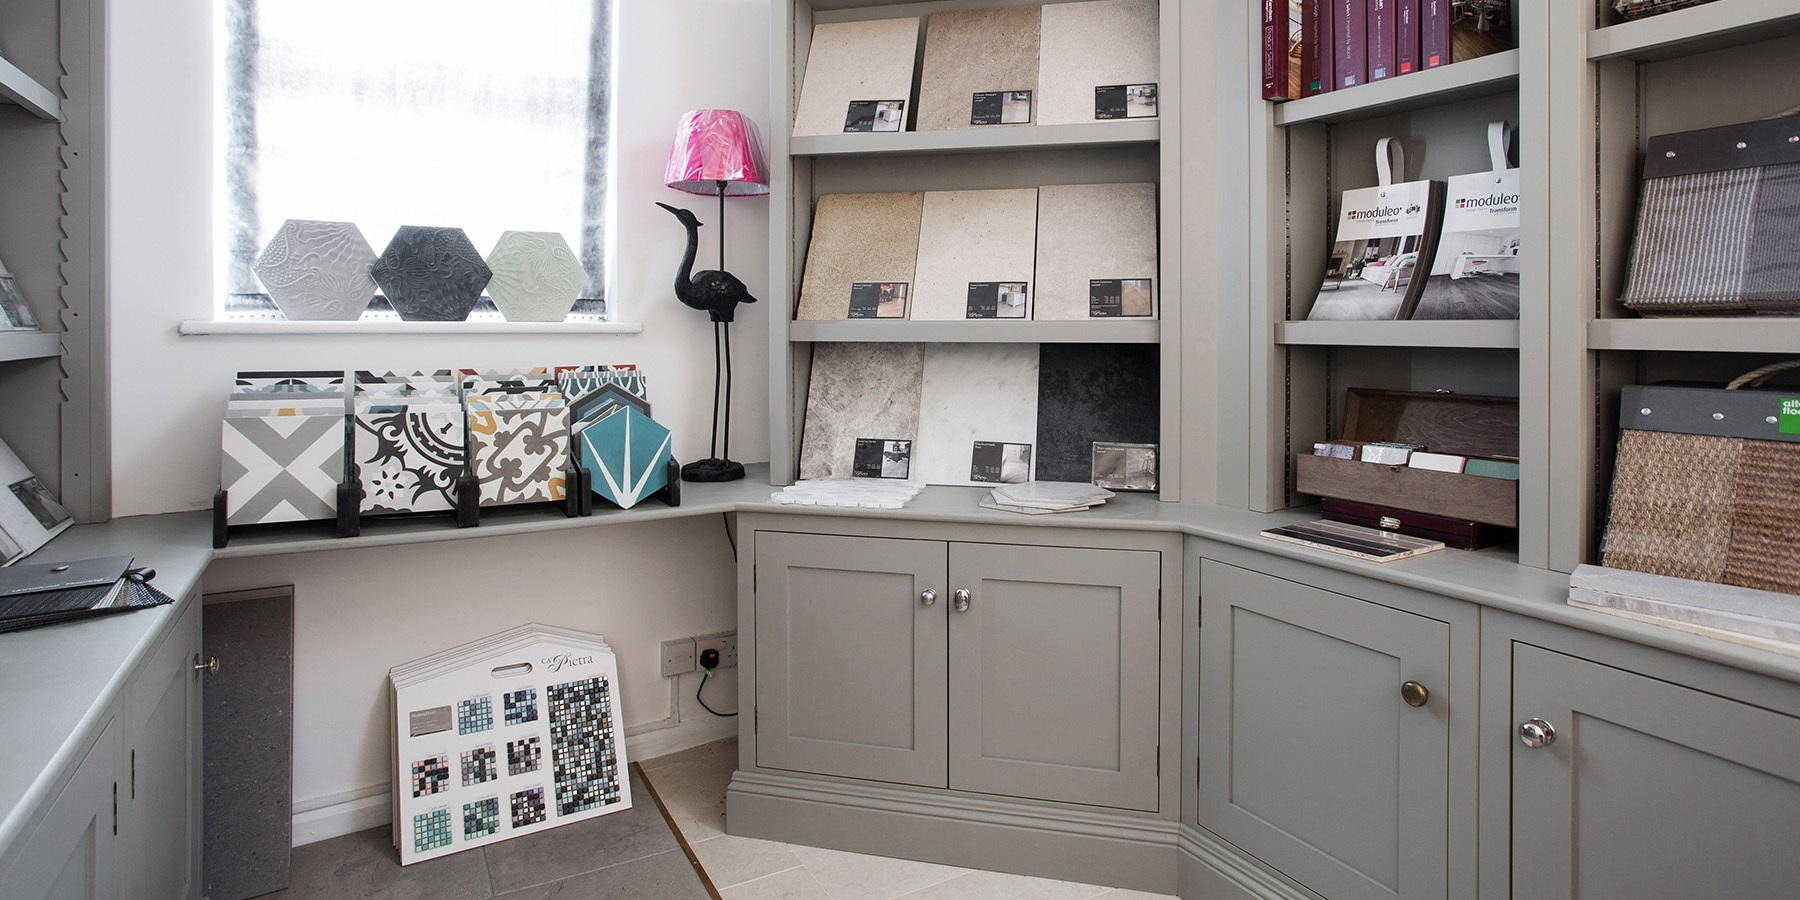 Handmade Kitchen Showroom In Sevenoaks, Kent - Burlanes Sevenoaks is located in the heart of Sevenoaks, Kent, and showcases a range of our handmade kitchens, bathrooms, wardrobes and beautiful freestanding pieces of furniture for the home.